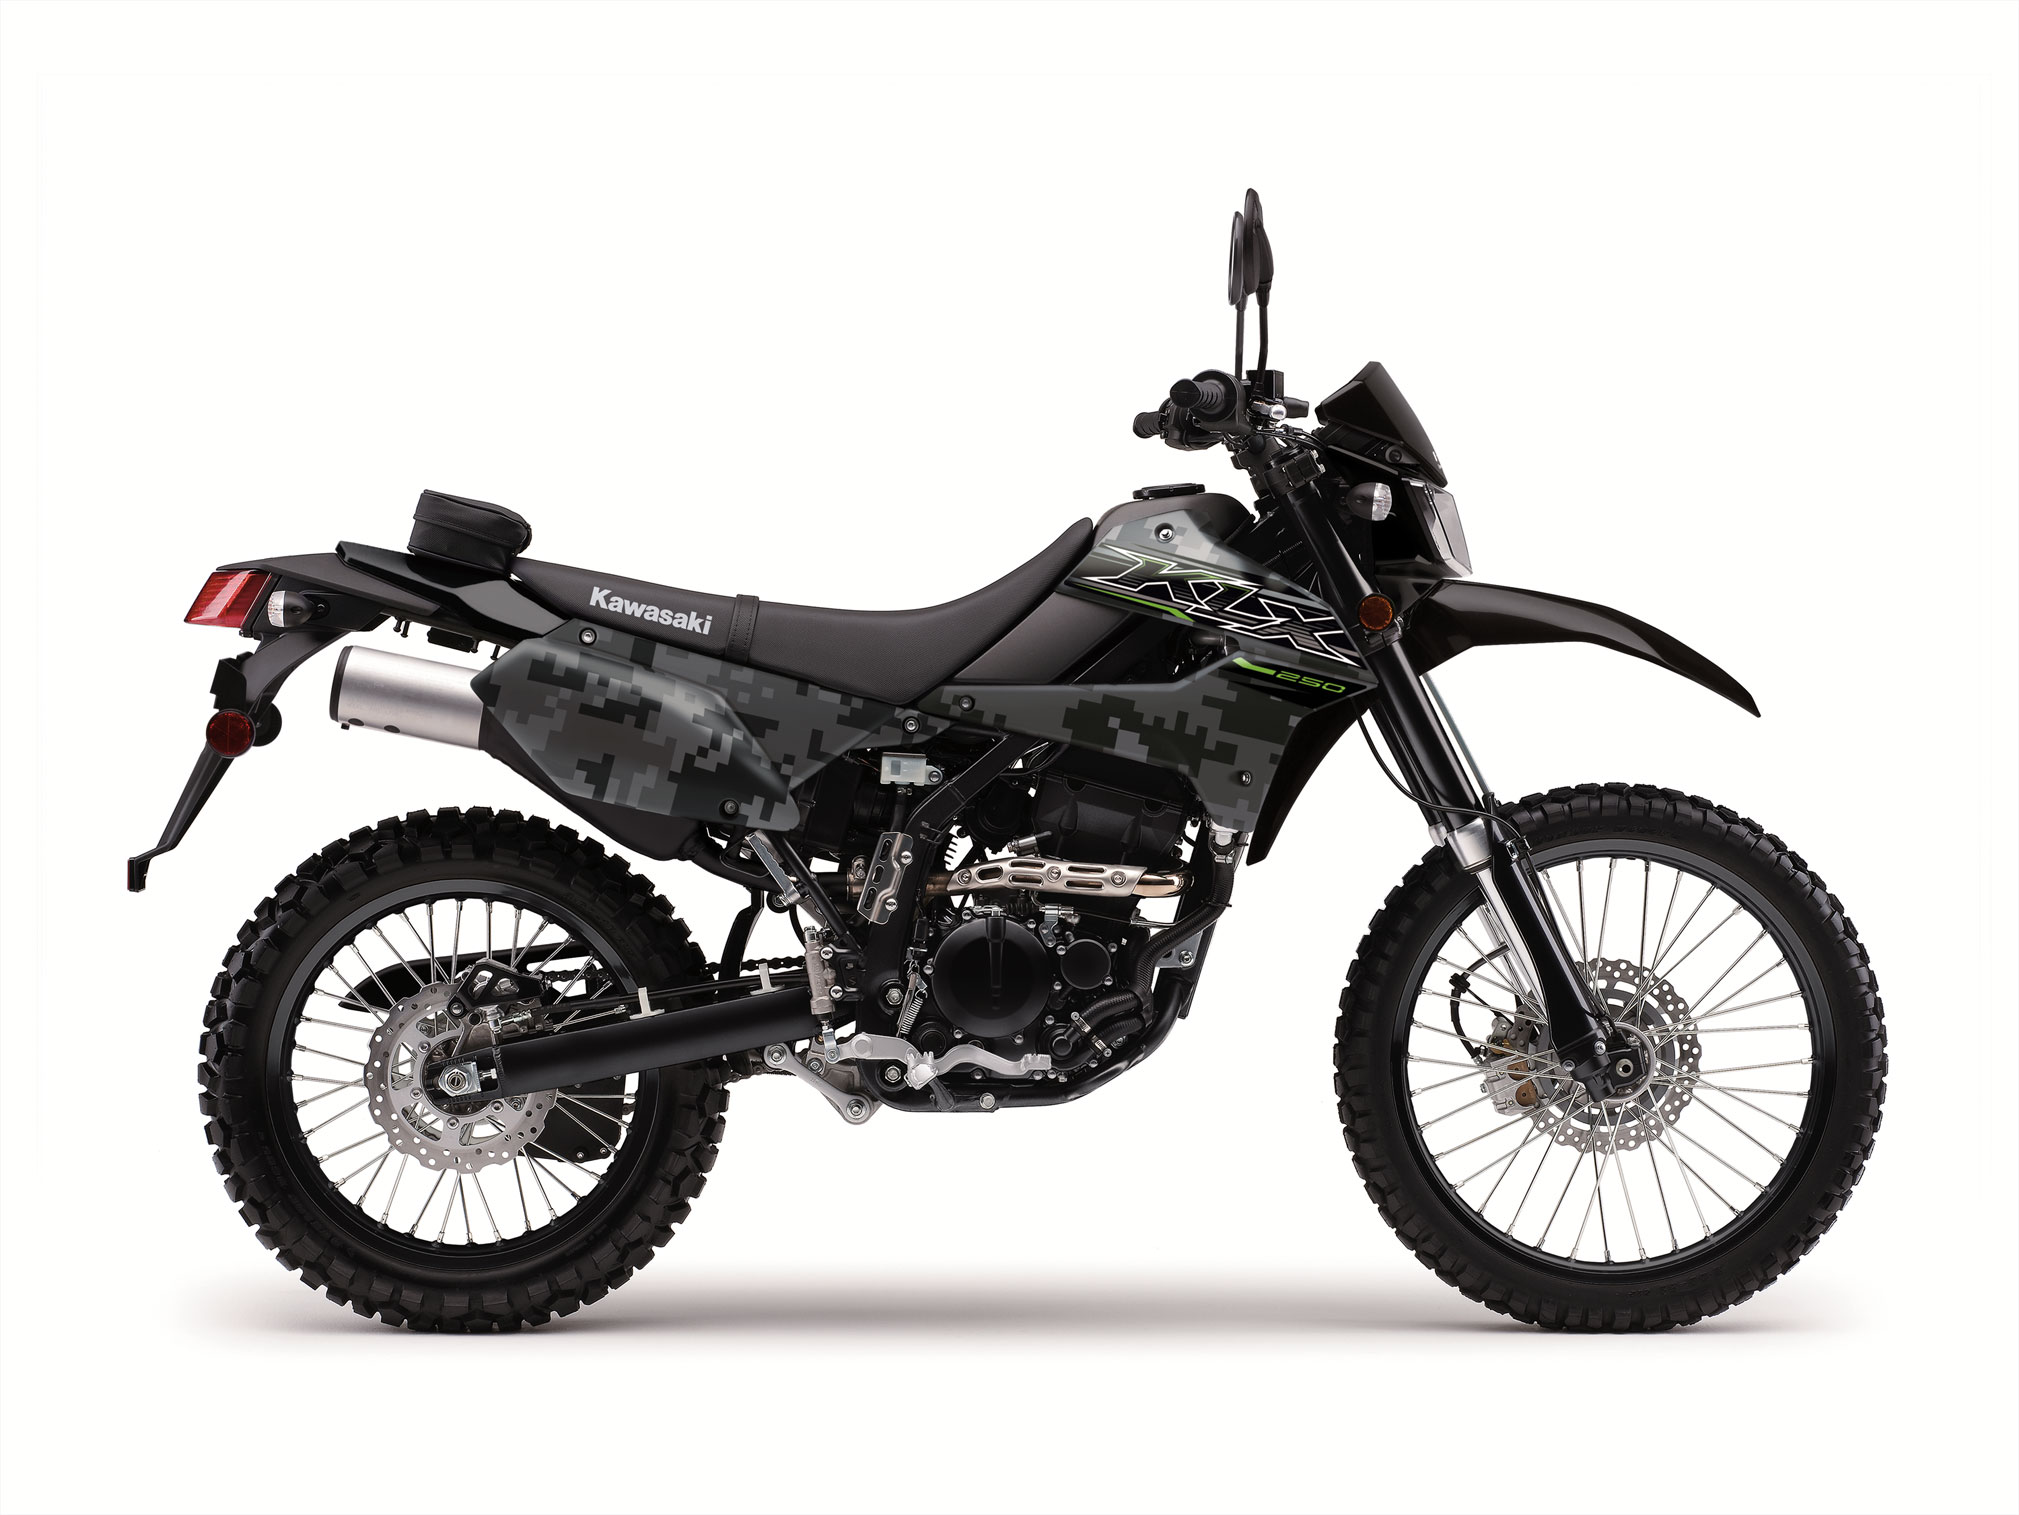 2019 Kawasaki KLX250S Camo Guide • Total Motorcycle